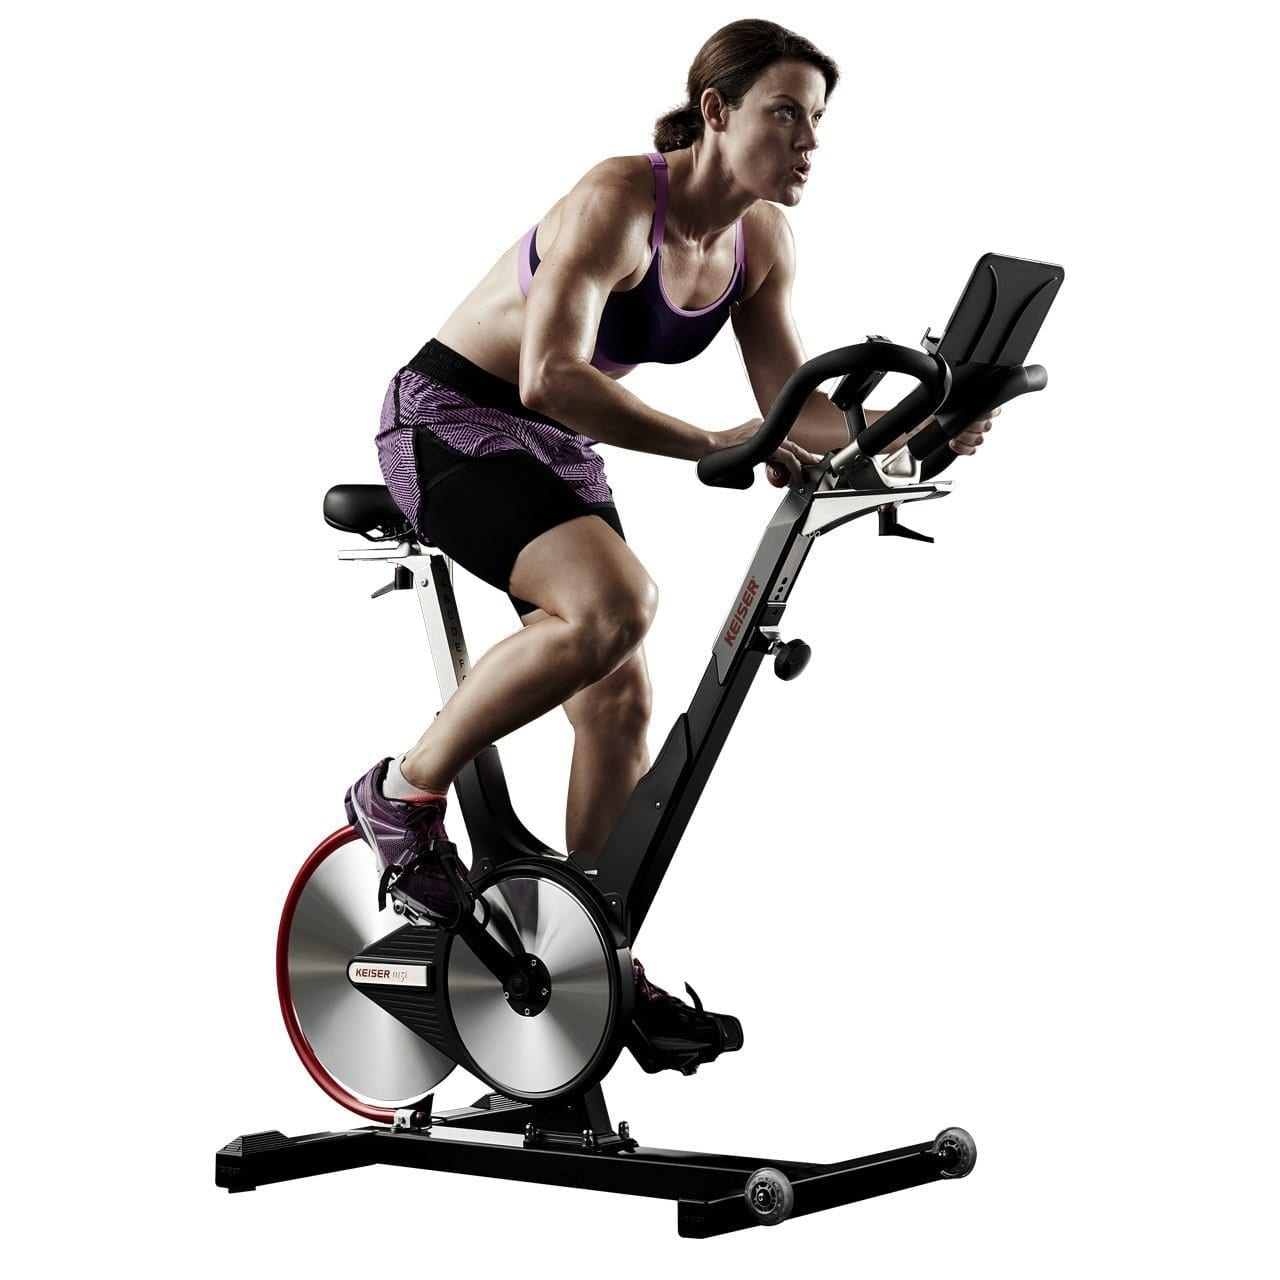 Is The Keiser M3 Plus Indoor Cycle Worth The Money